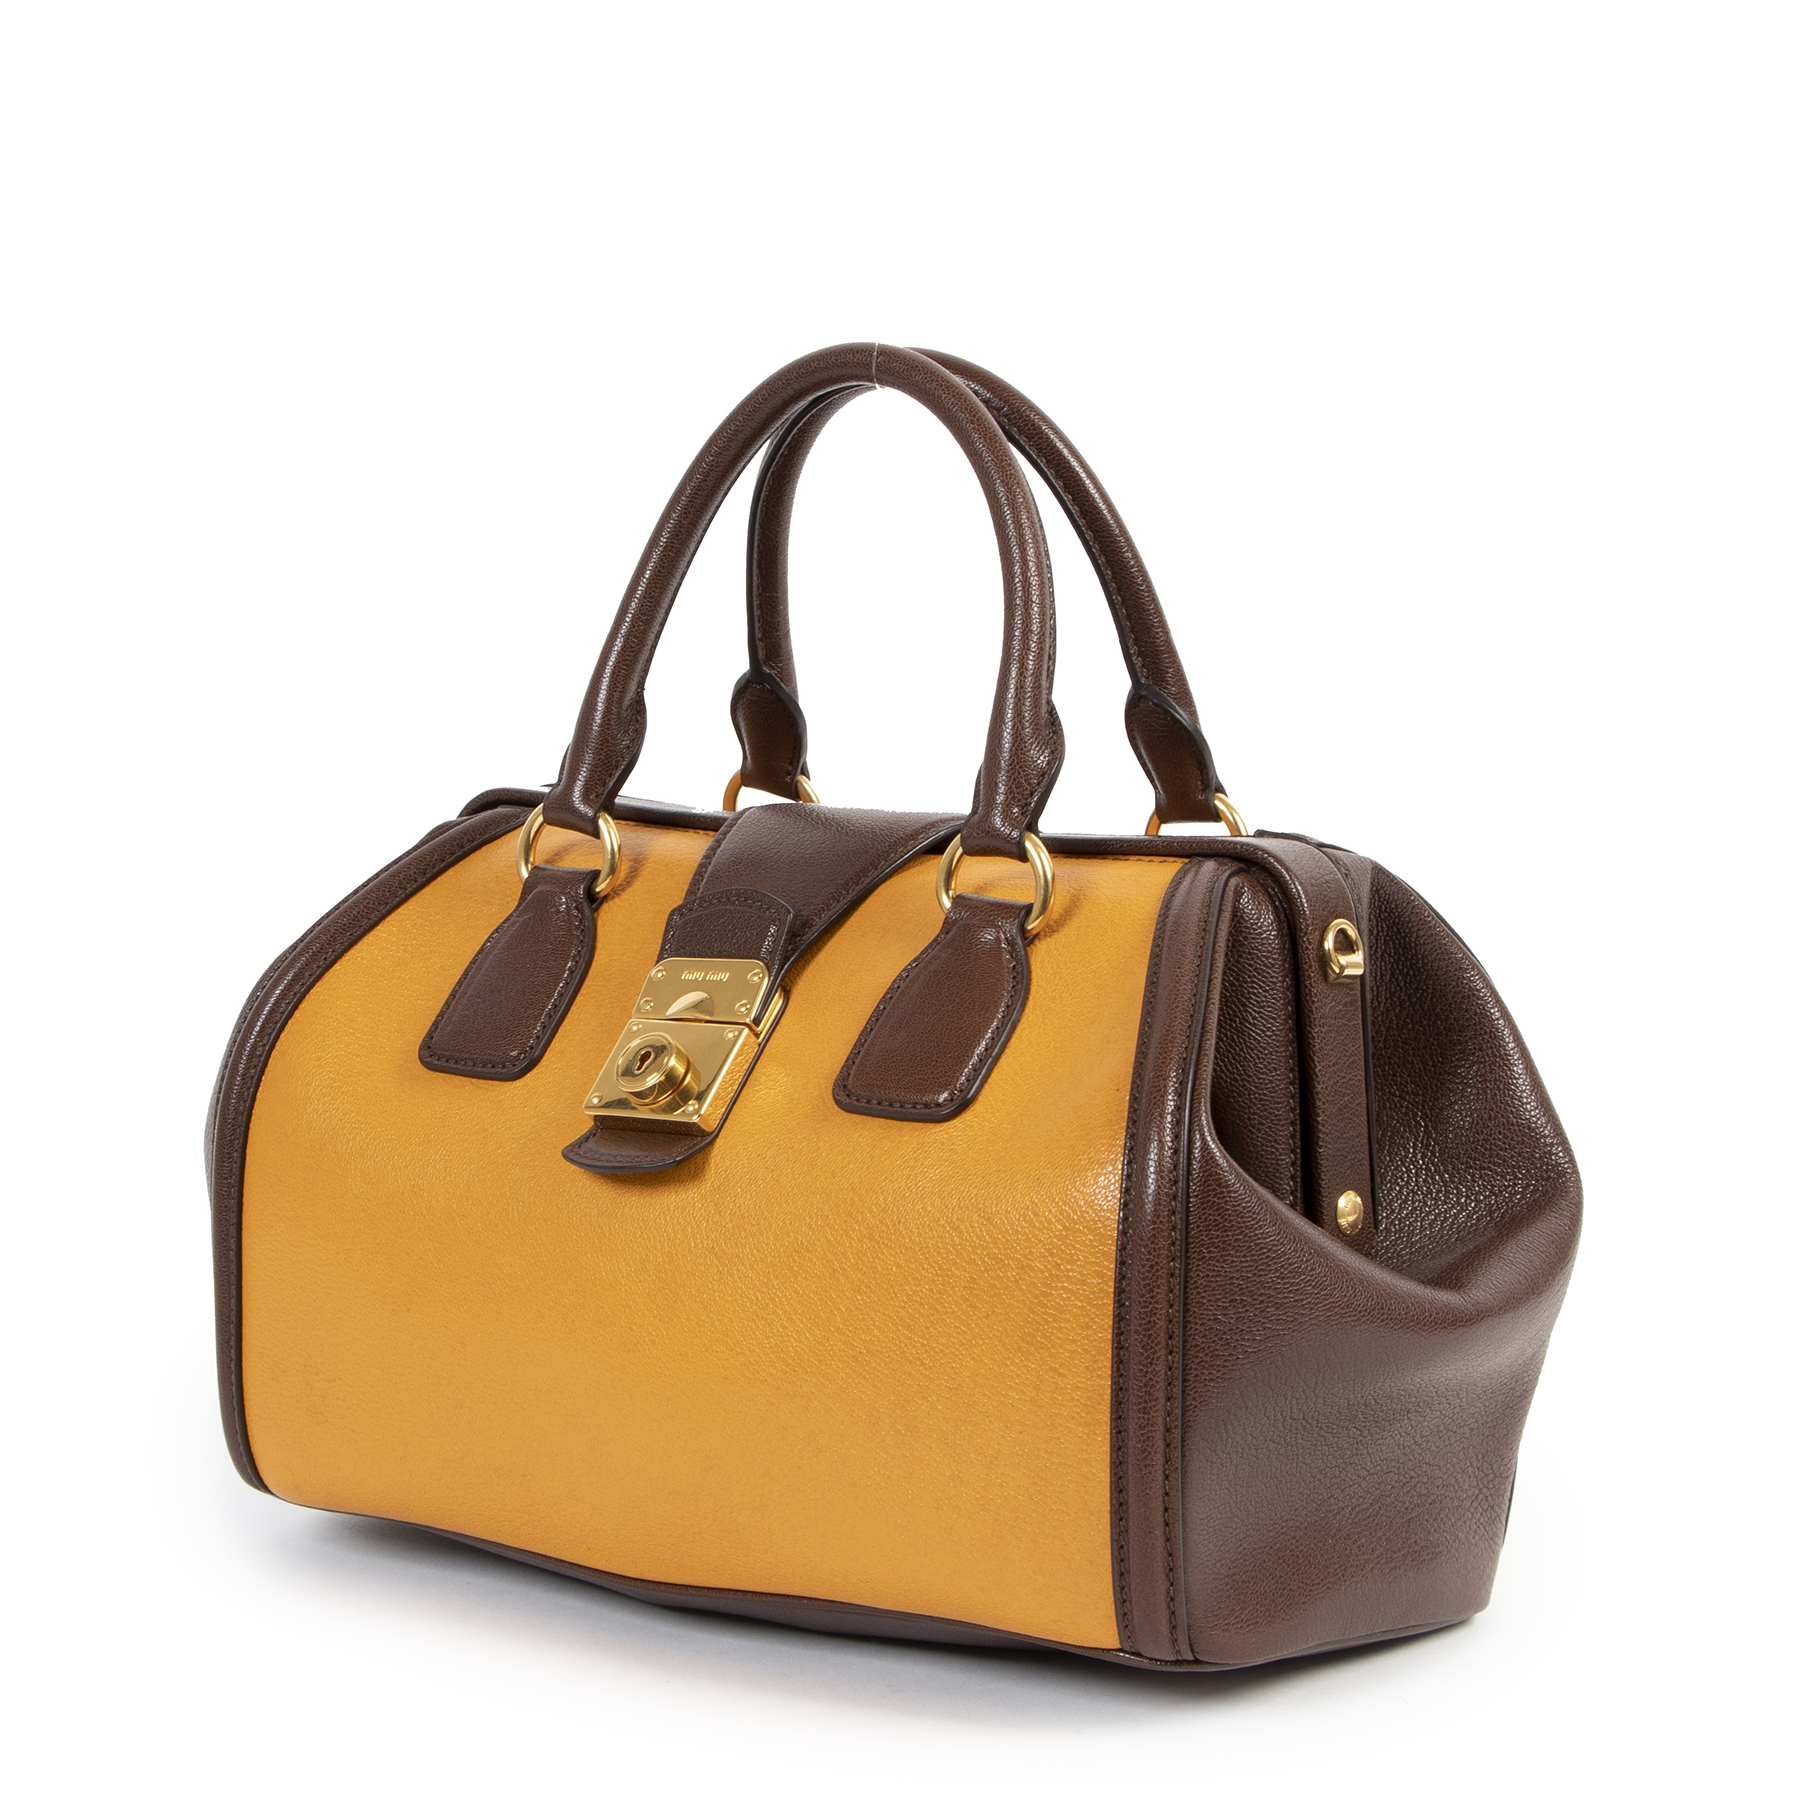 Miu Miu Yellow And Brown Madras Bicolore Top Handle Bag for the best price at Labellov secondhand luxury